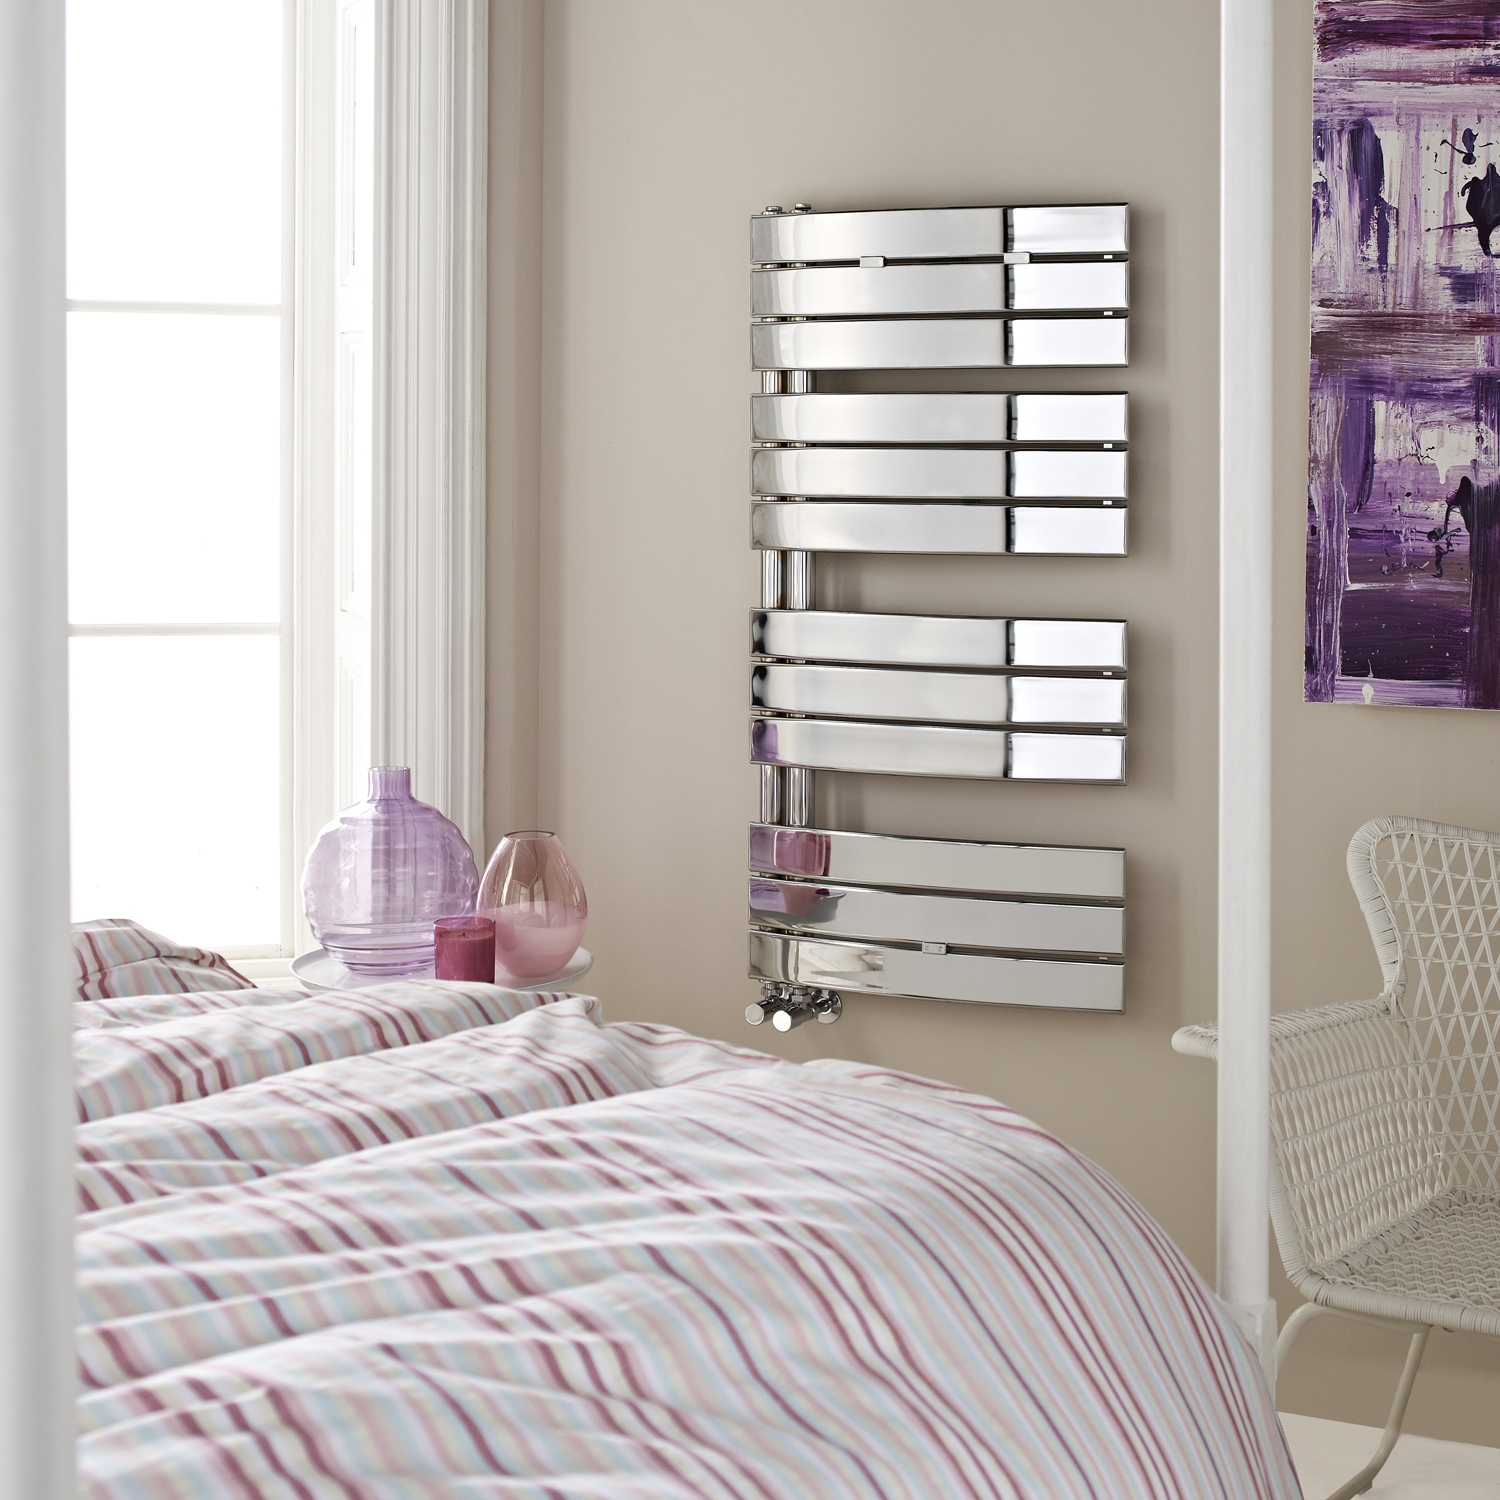 Hudson Reed Elgin Designer Heated Towel Rail 1080mm H x 550mm W Chrome